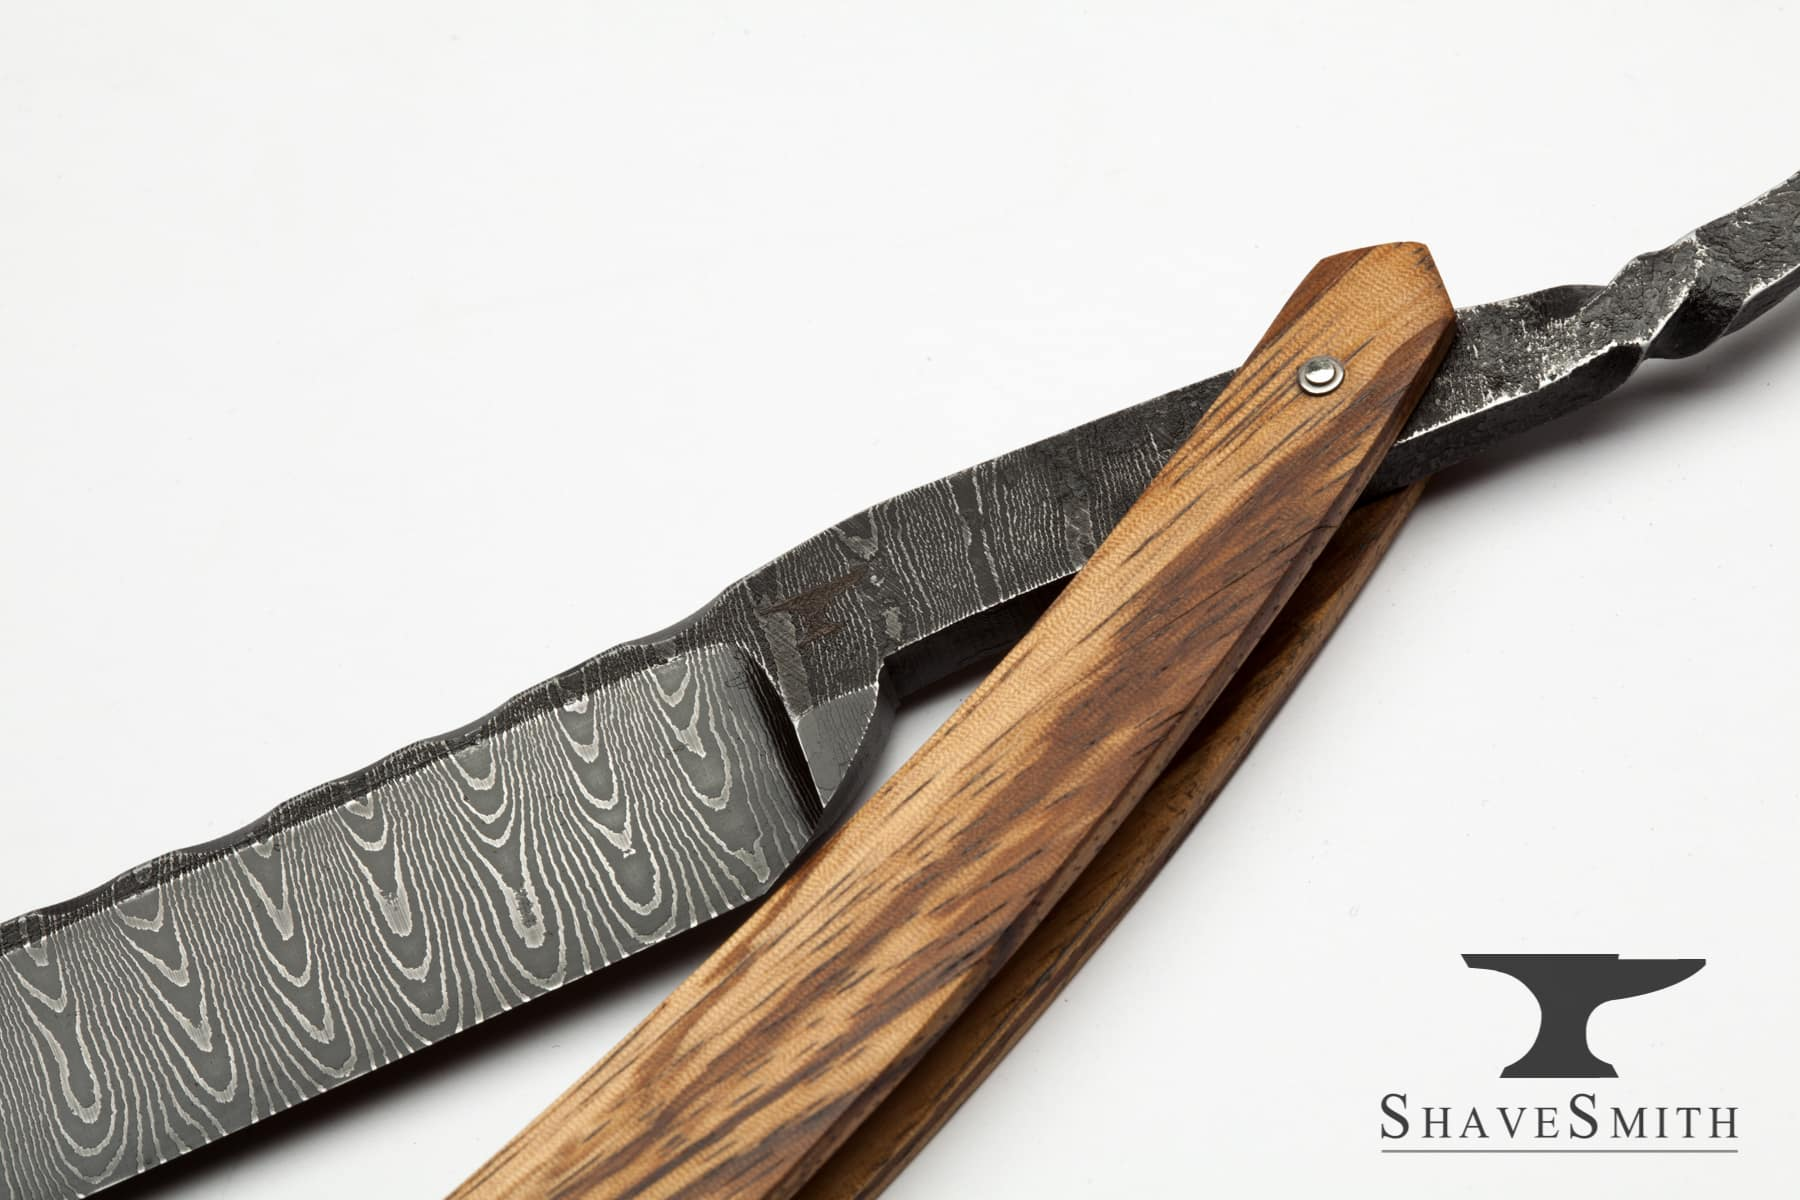 7/8 Wedge Grind, Zebra Wood, Forged, Worked Spine Damascus – Custom Straight Razor